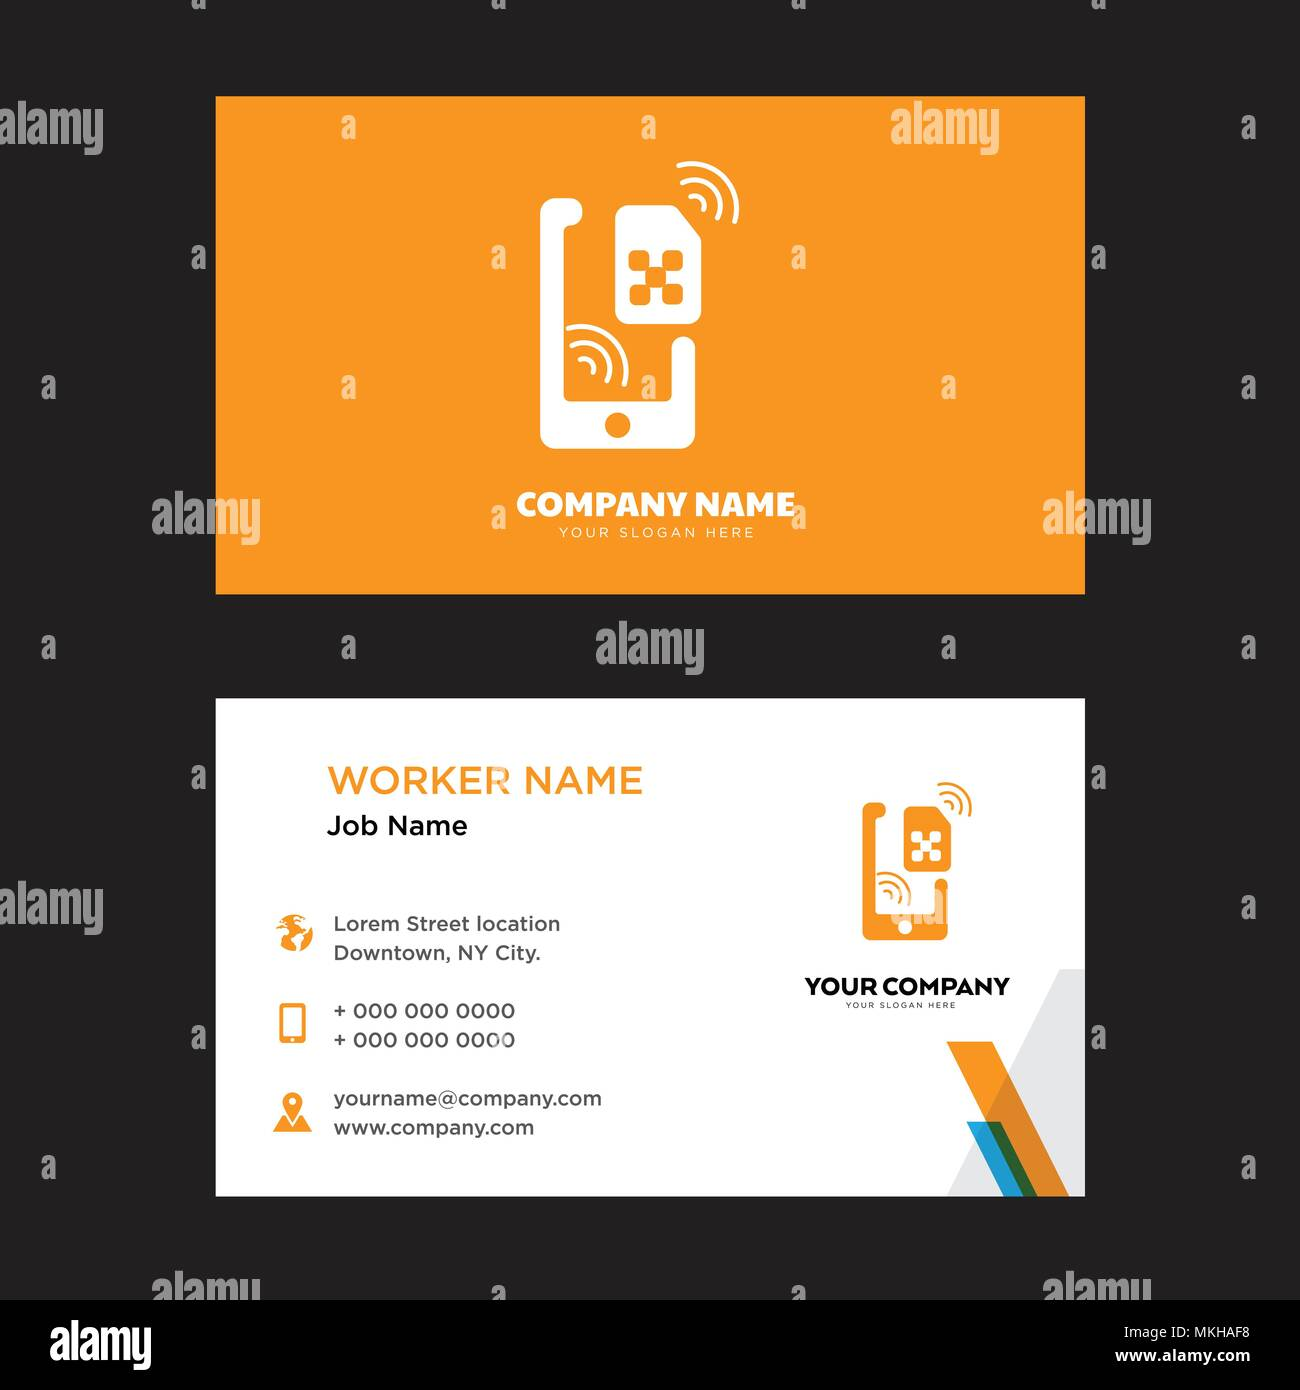 Sim business card design template, Visiting for your company, Modern ...